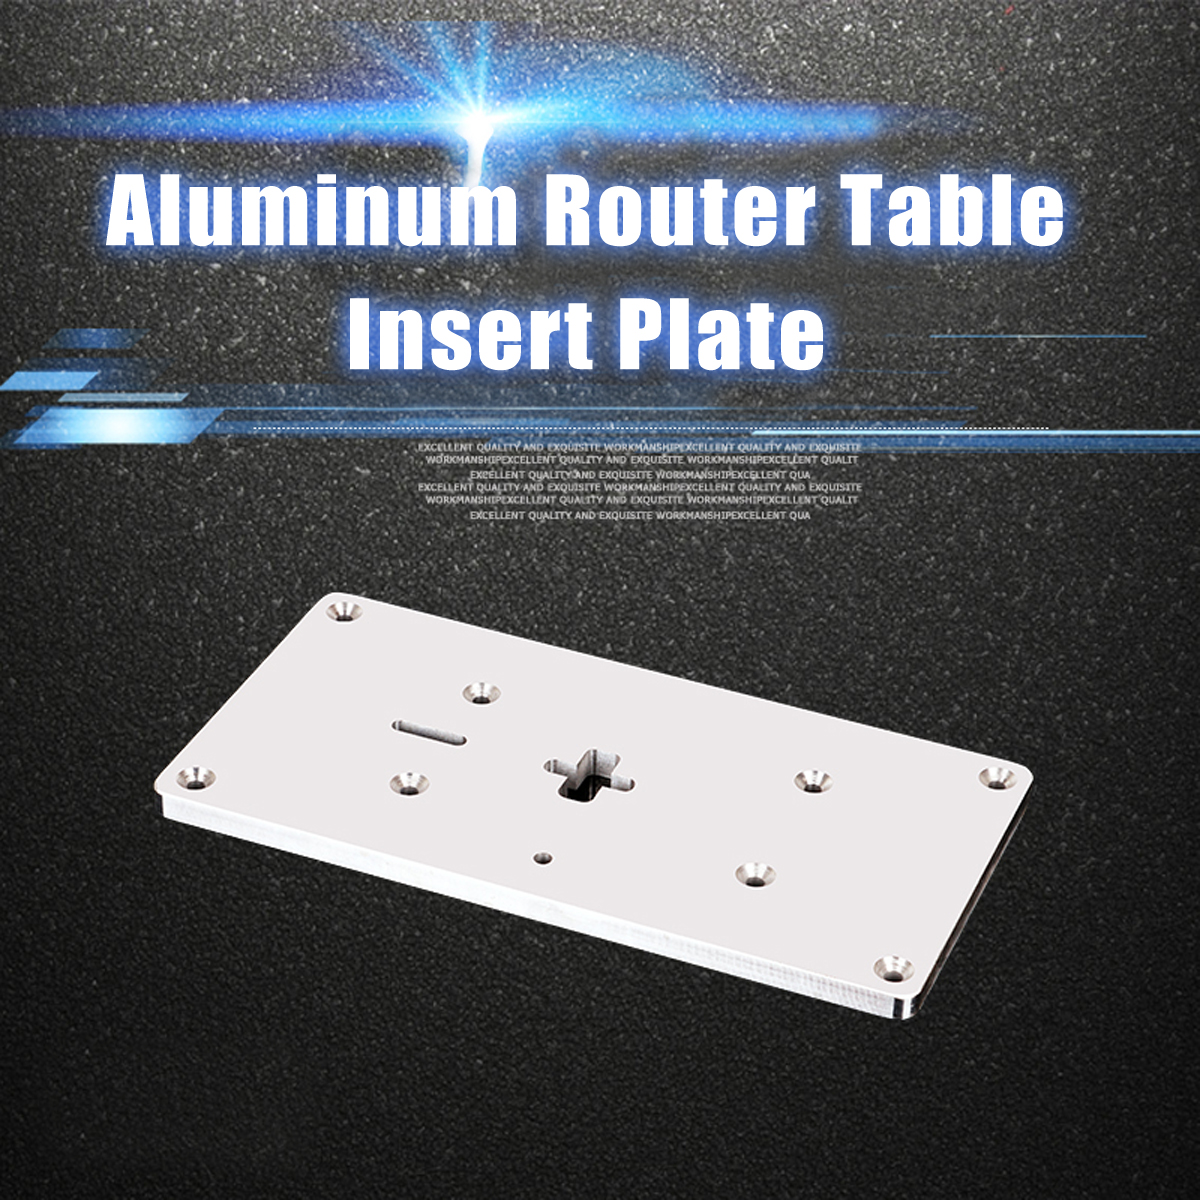 Aluminum Router Table Insert Plate with Fixing Screws For Jig Saw Woodworking Benches ...